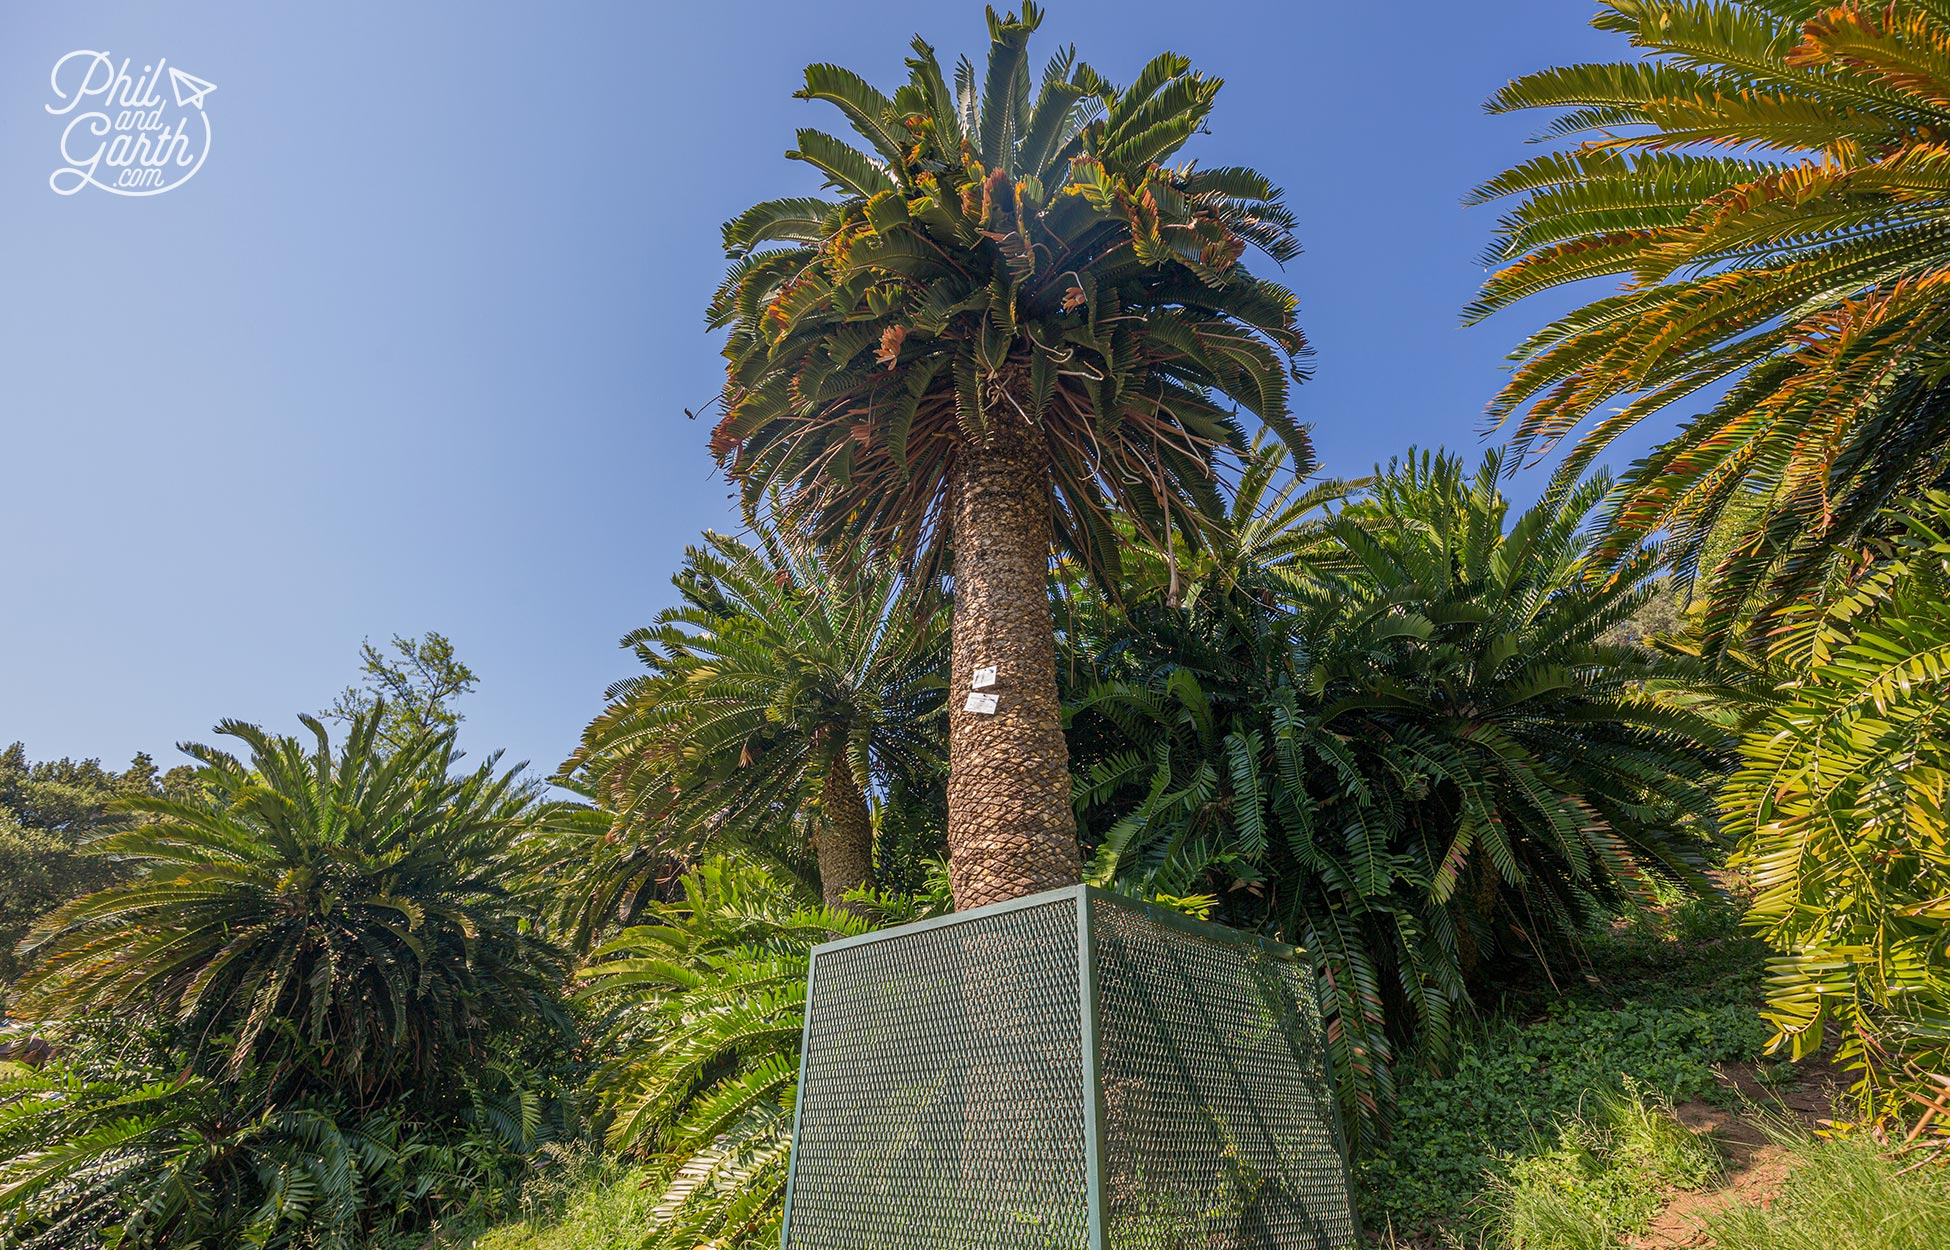 The oldest plant in South Africa - Wood's Cycad (Encephalartos woodii)